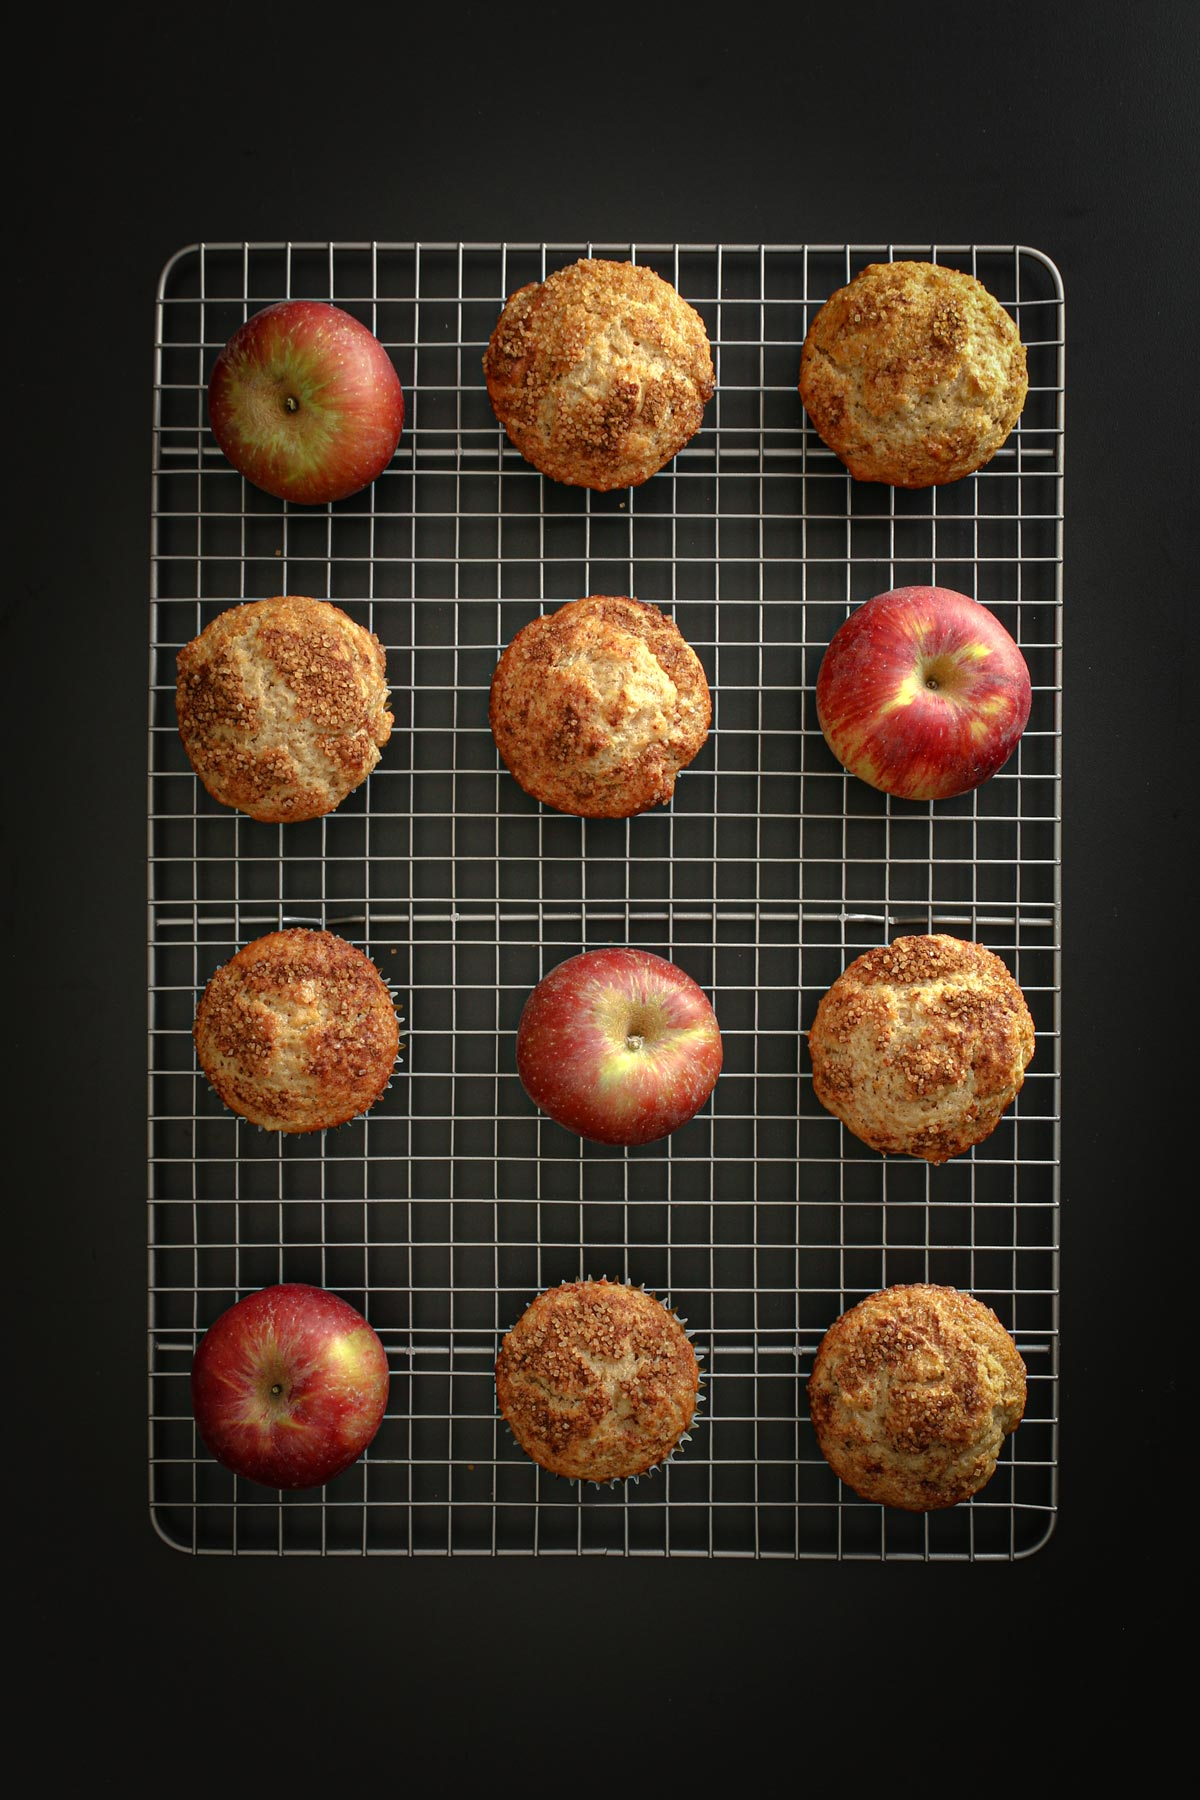 an array of red apples and apple muffins cooling on a steel wire rack on a black table top.